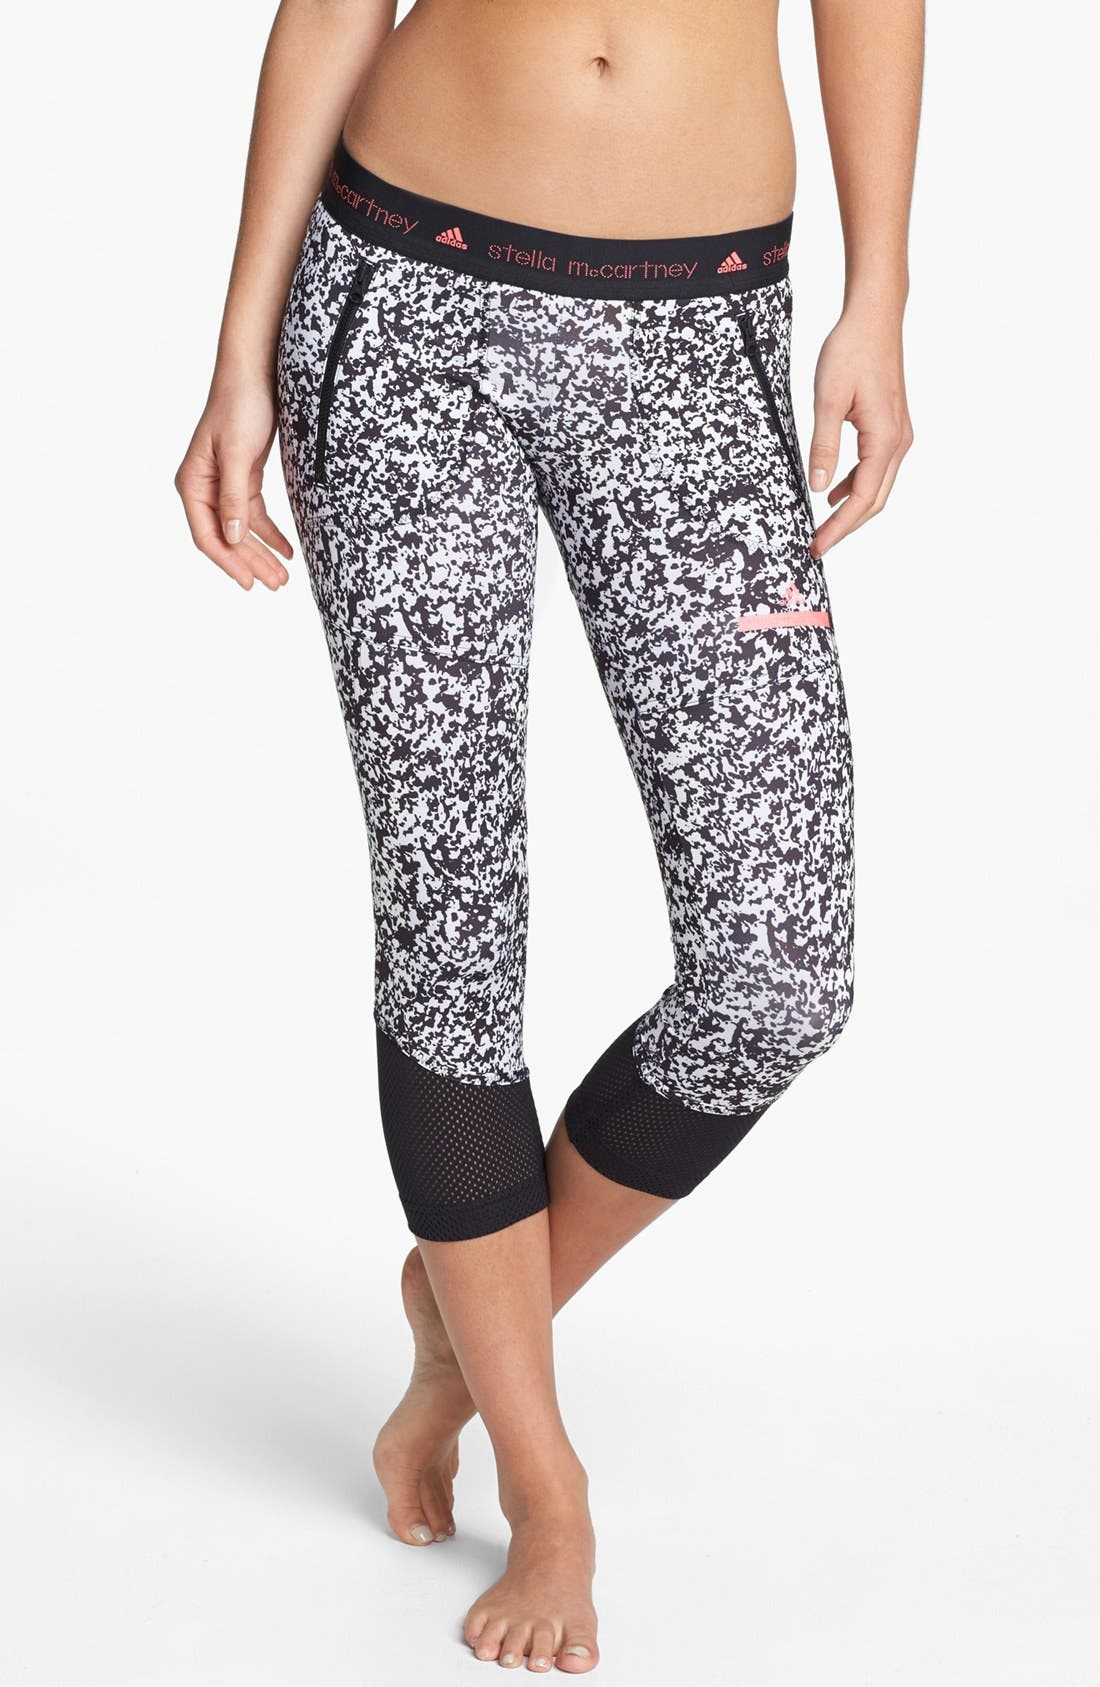 Alternate Image 1 Selected - adidas by Stella McCartney 'Run' Three Quarter Length Pants